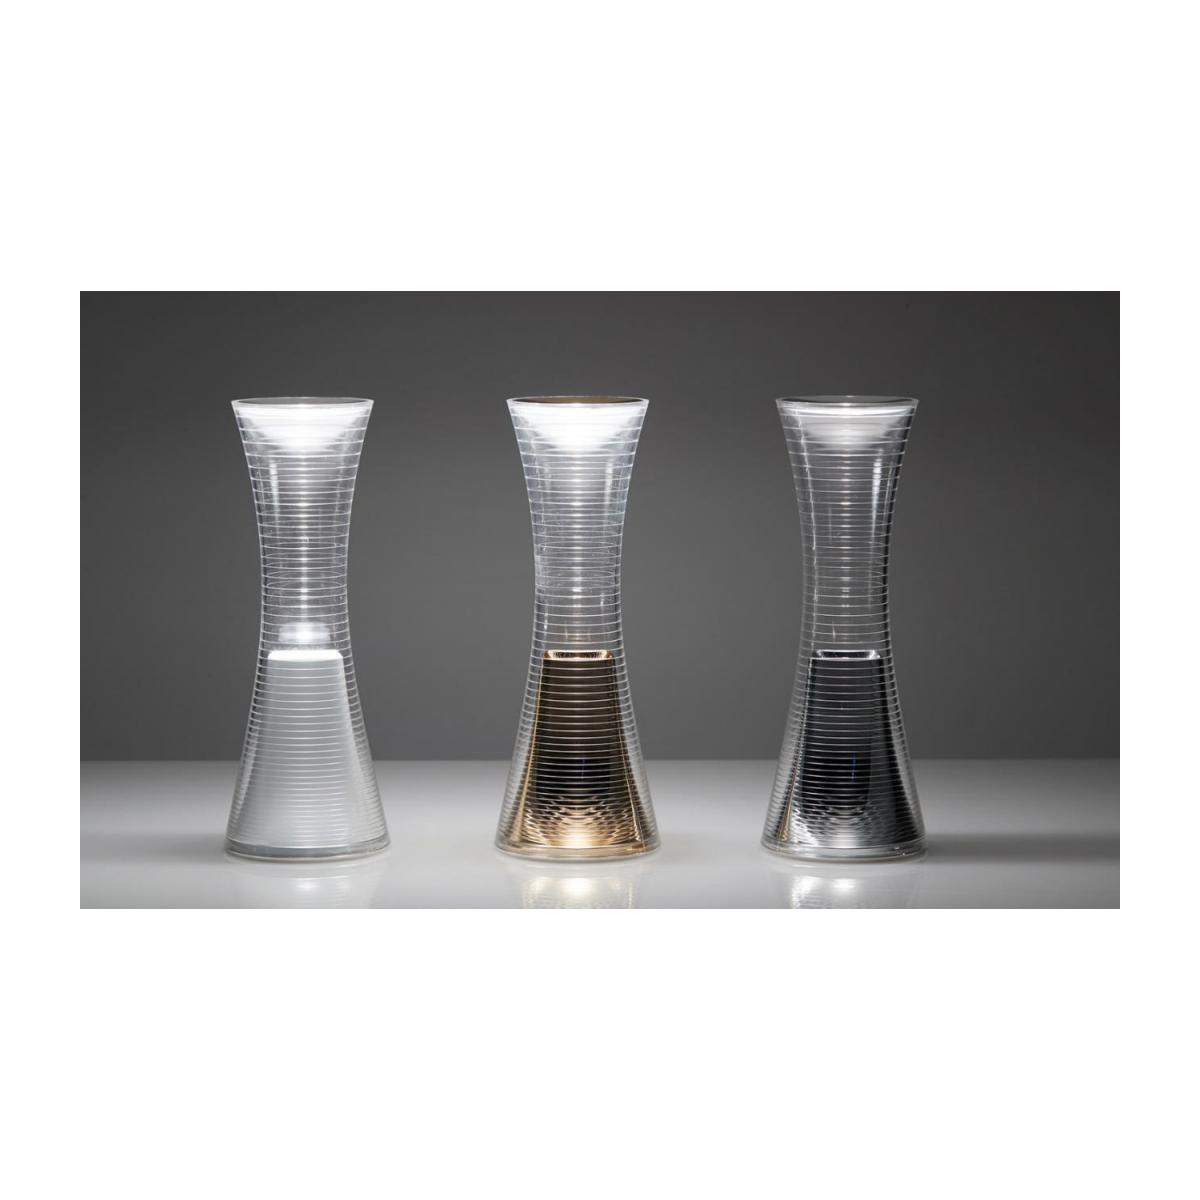 Come Together - Lampe de table chrome n°2